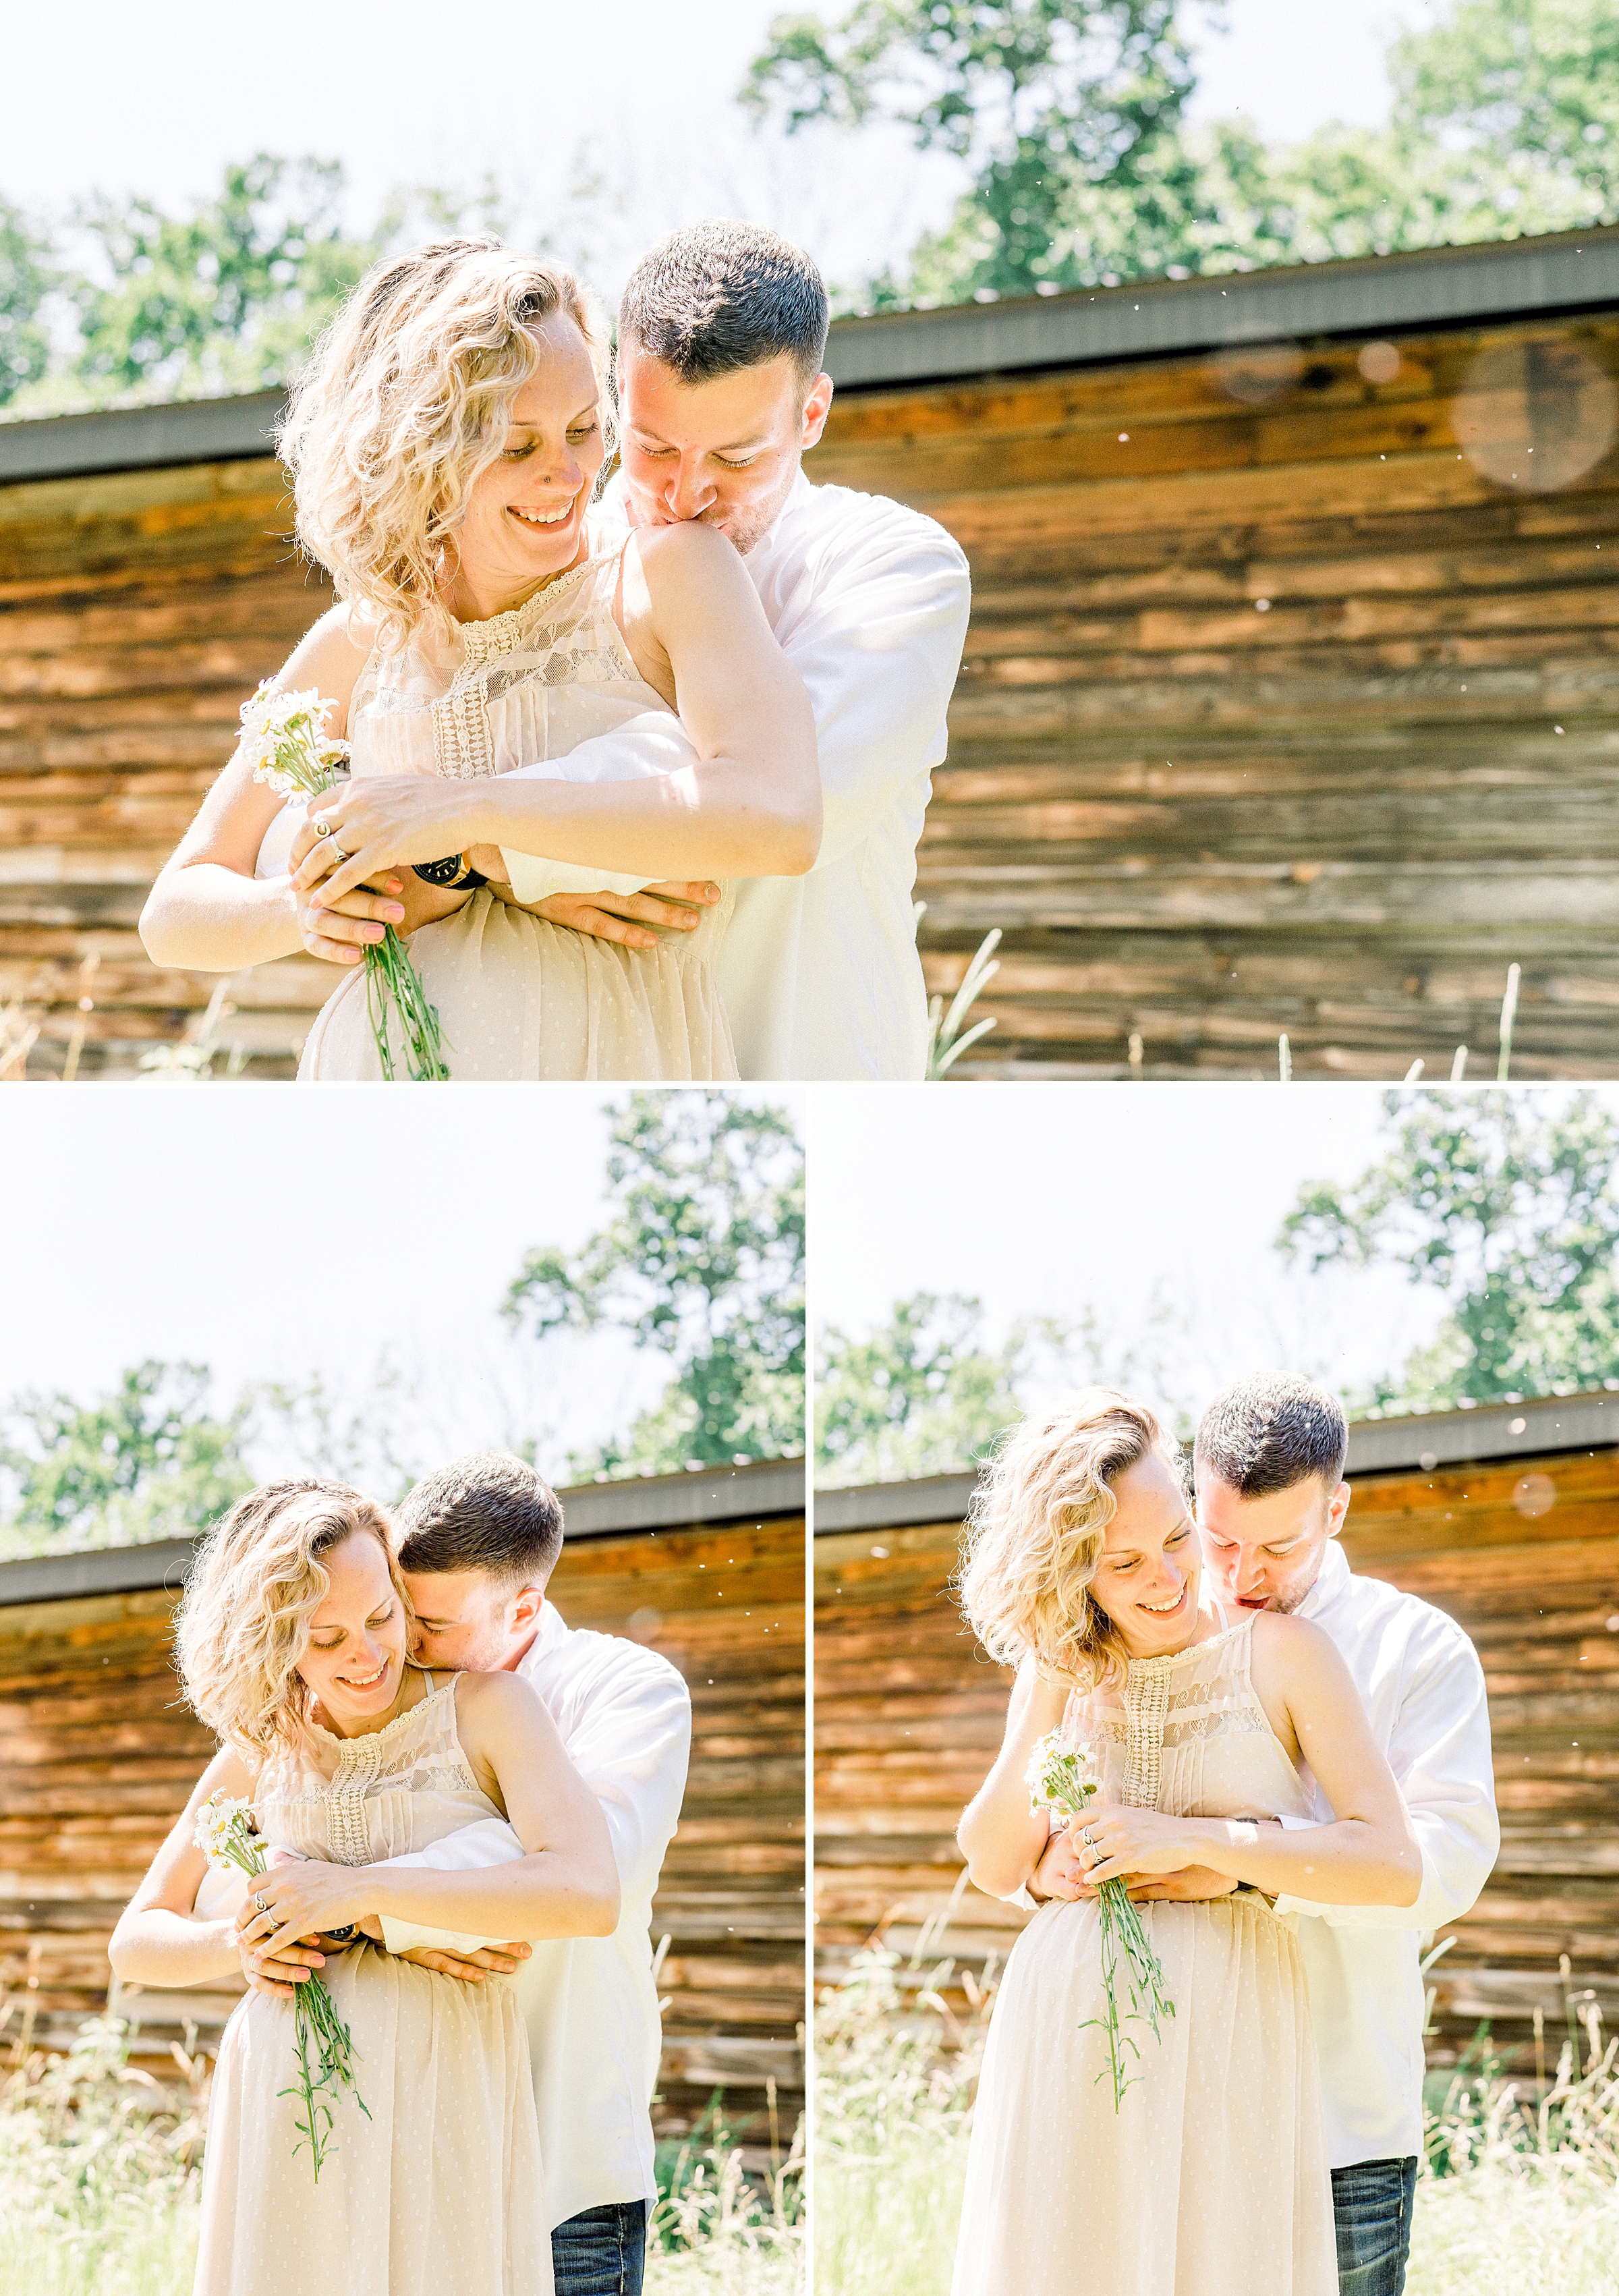 Cute rustic farm maternity session in New Jersey